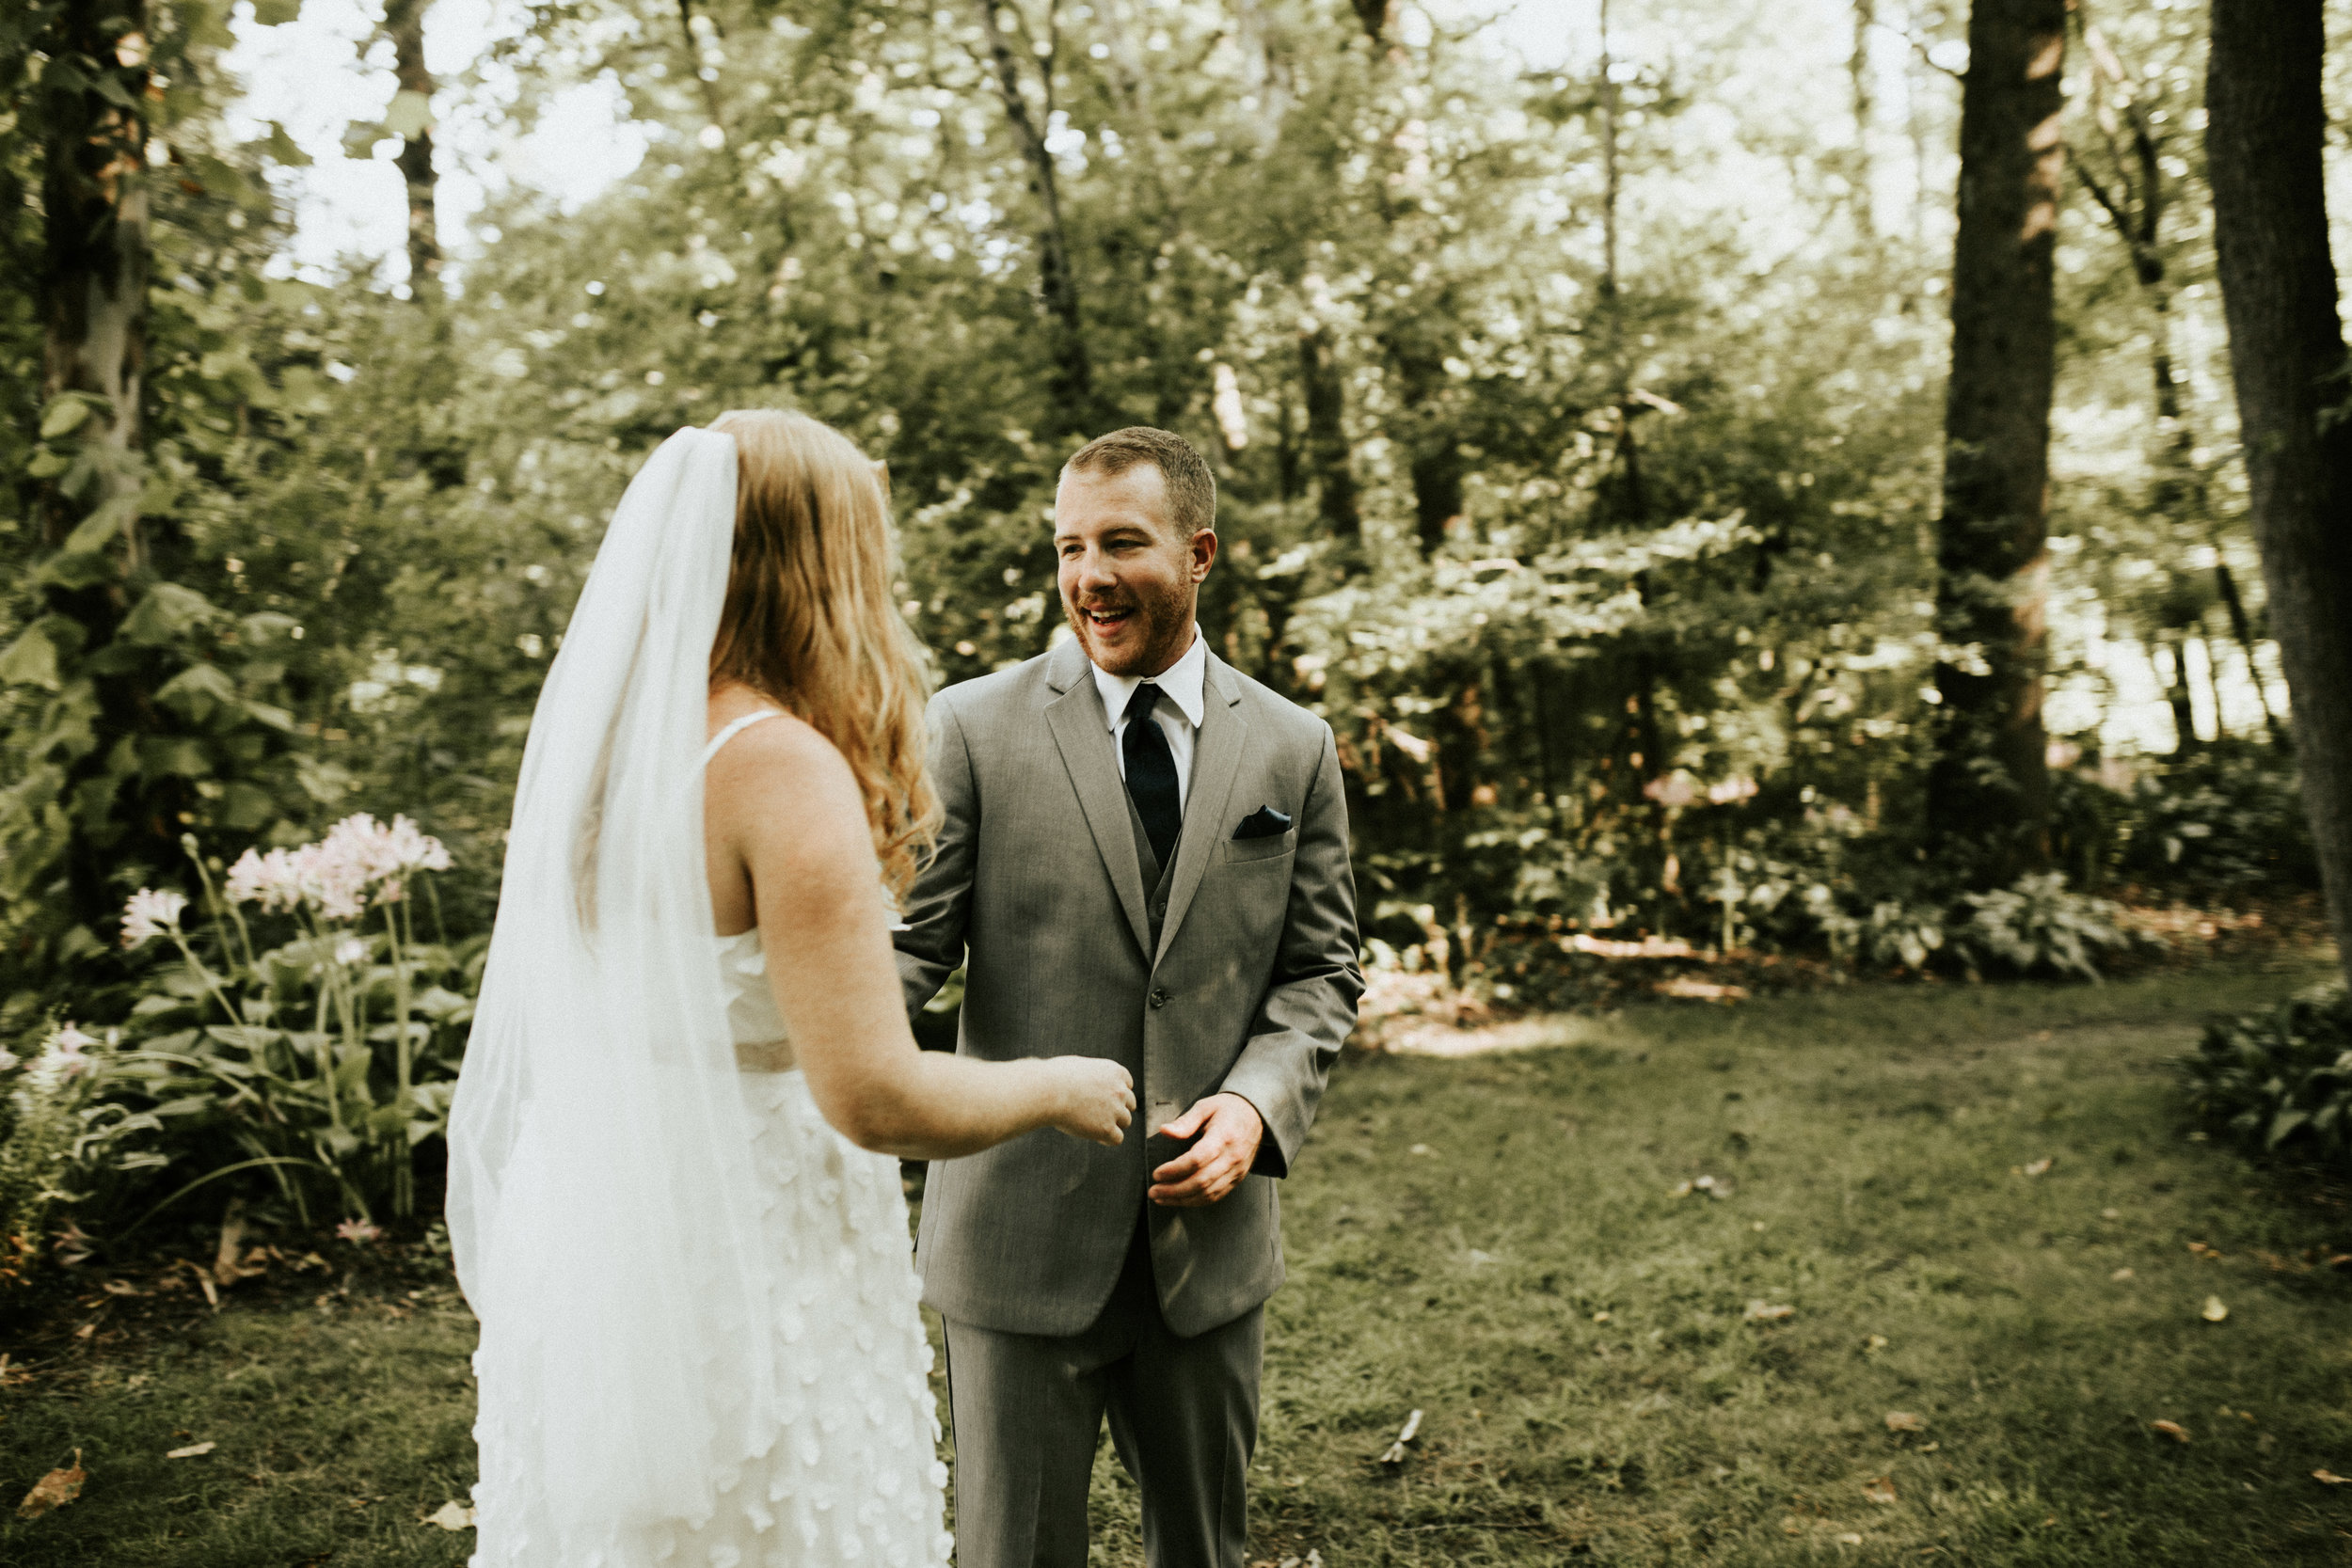 Destination wedding photographer Cassandra Michelle Photographyjpg